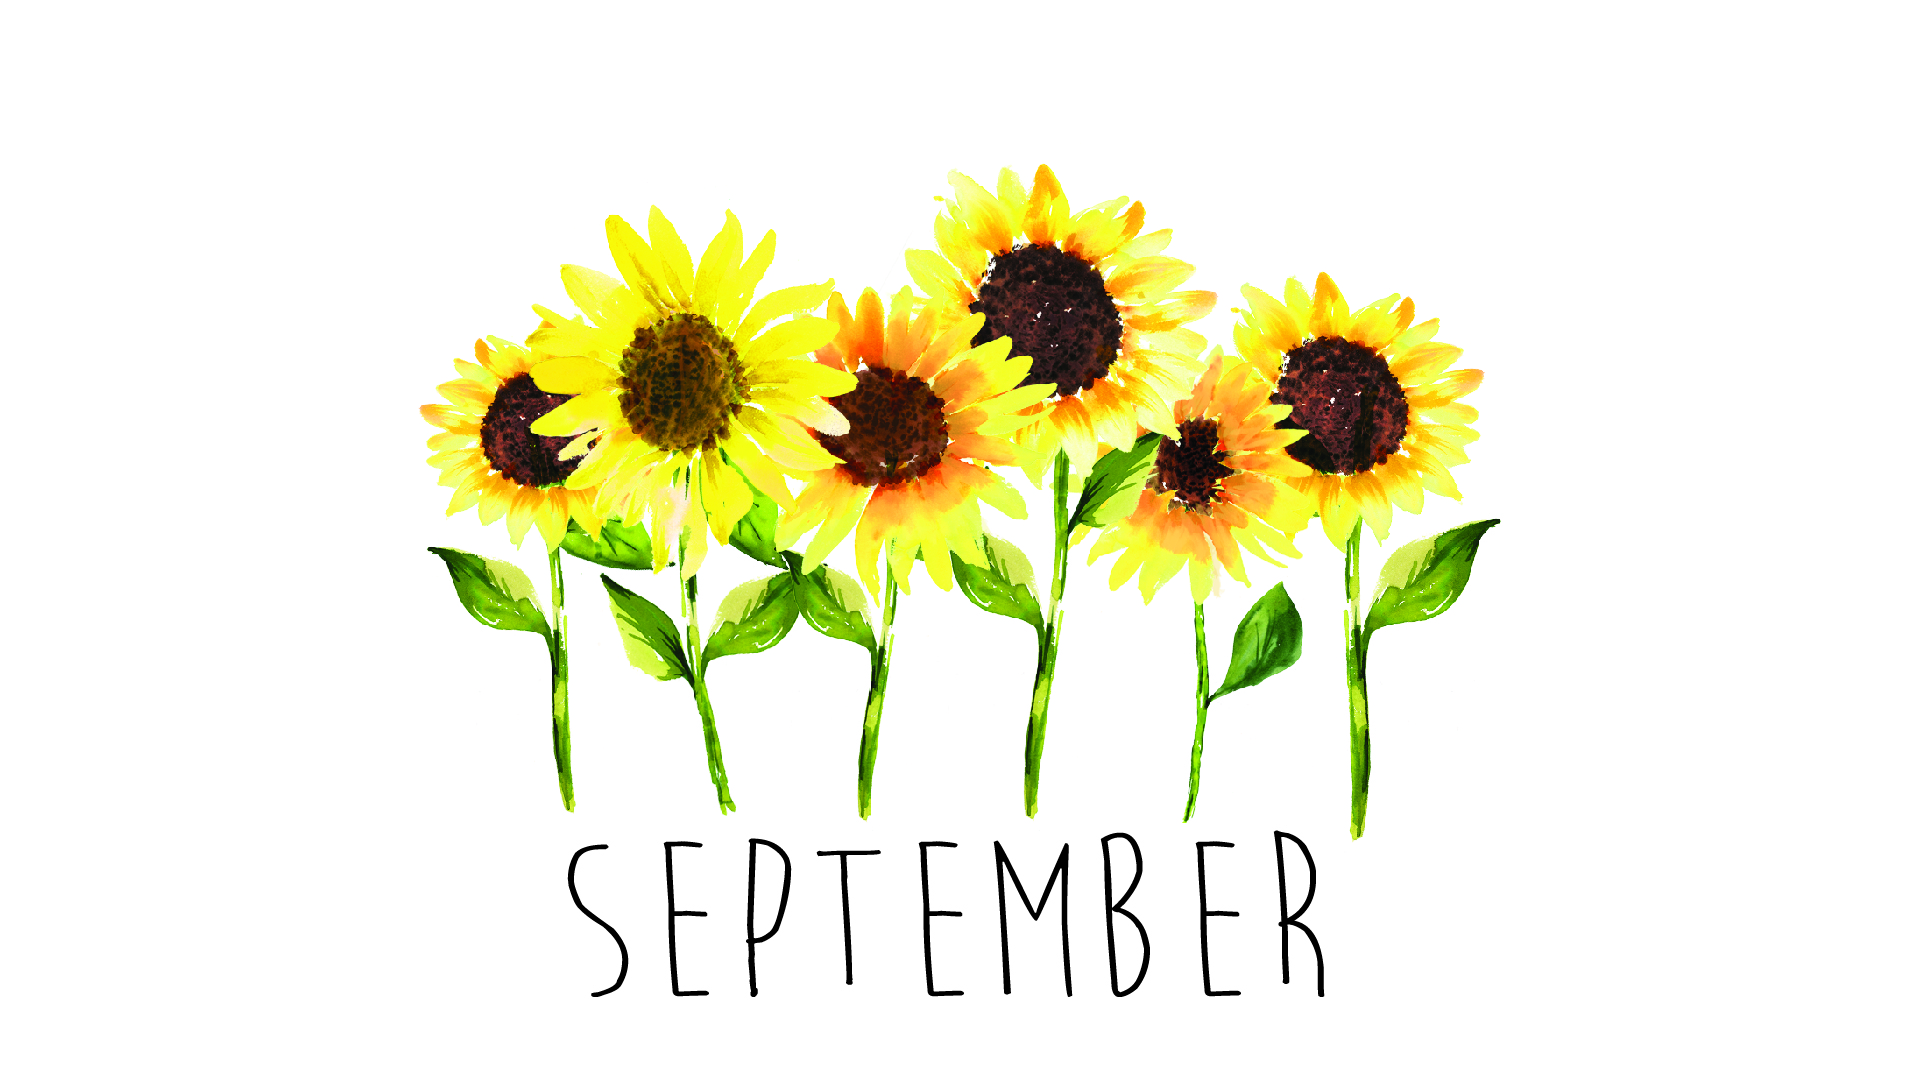 Sunflowers Freebie September 2018 Tech Wallpaper Design Works Intl 1920x1080